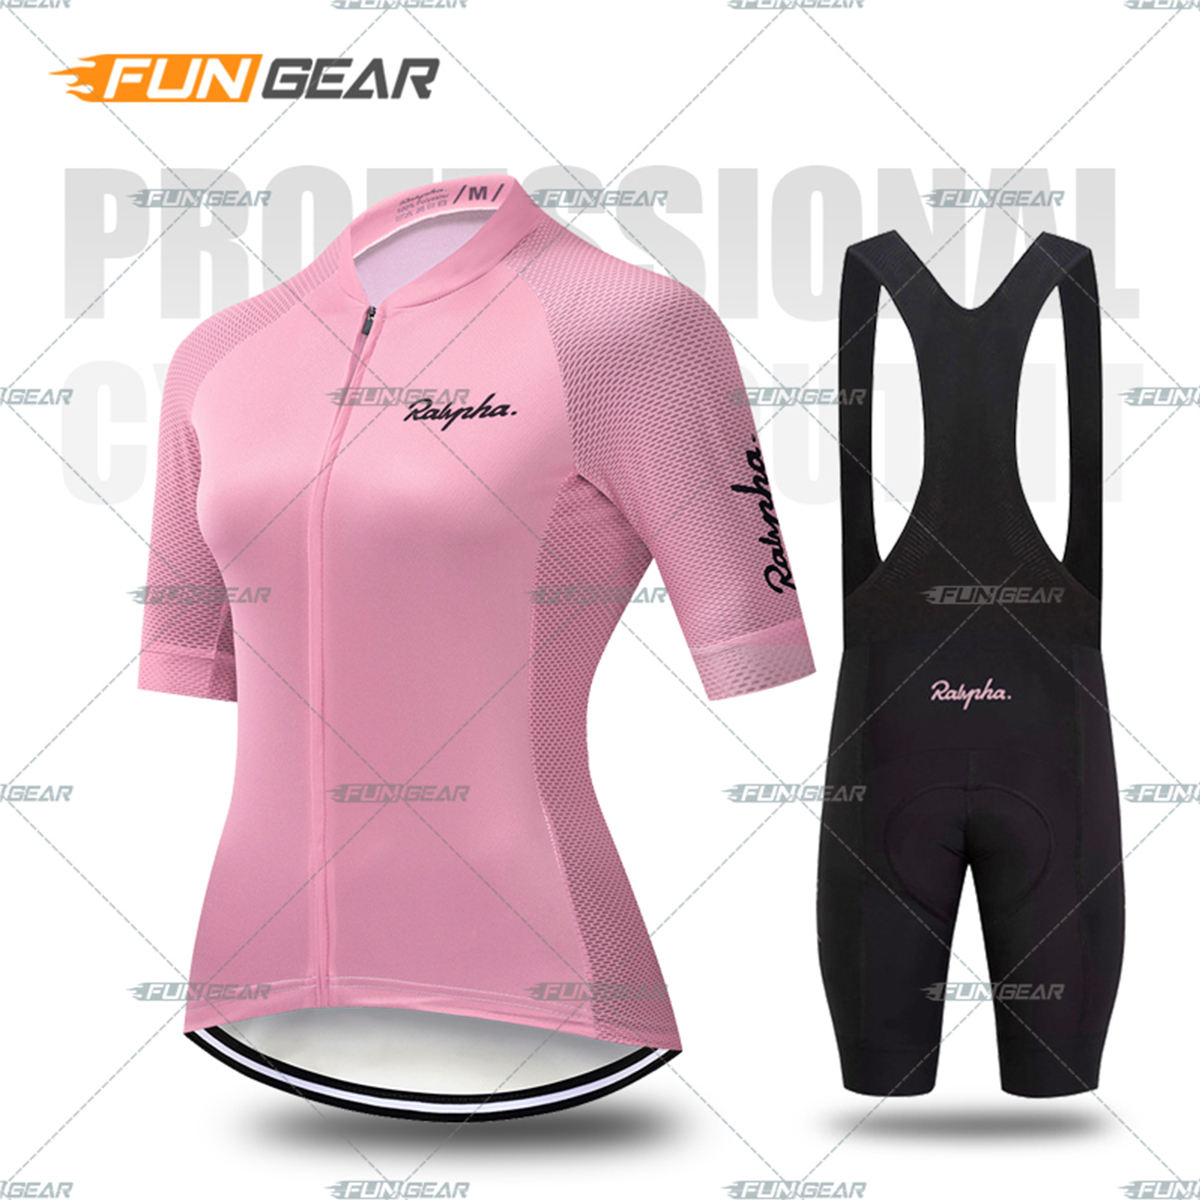 Women Cycling Clothing Bicycle Jersey Set Female MTB Ropa Ciclismo Girl Cycle Casual <font><b>Wear</b></font> Road <font><b>Bike</b></font> Bib Short Pant Pad 7 Colors image